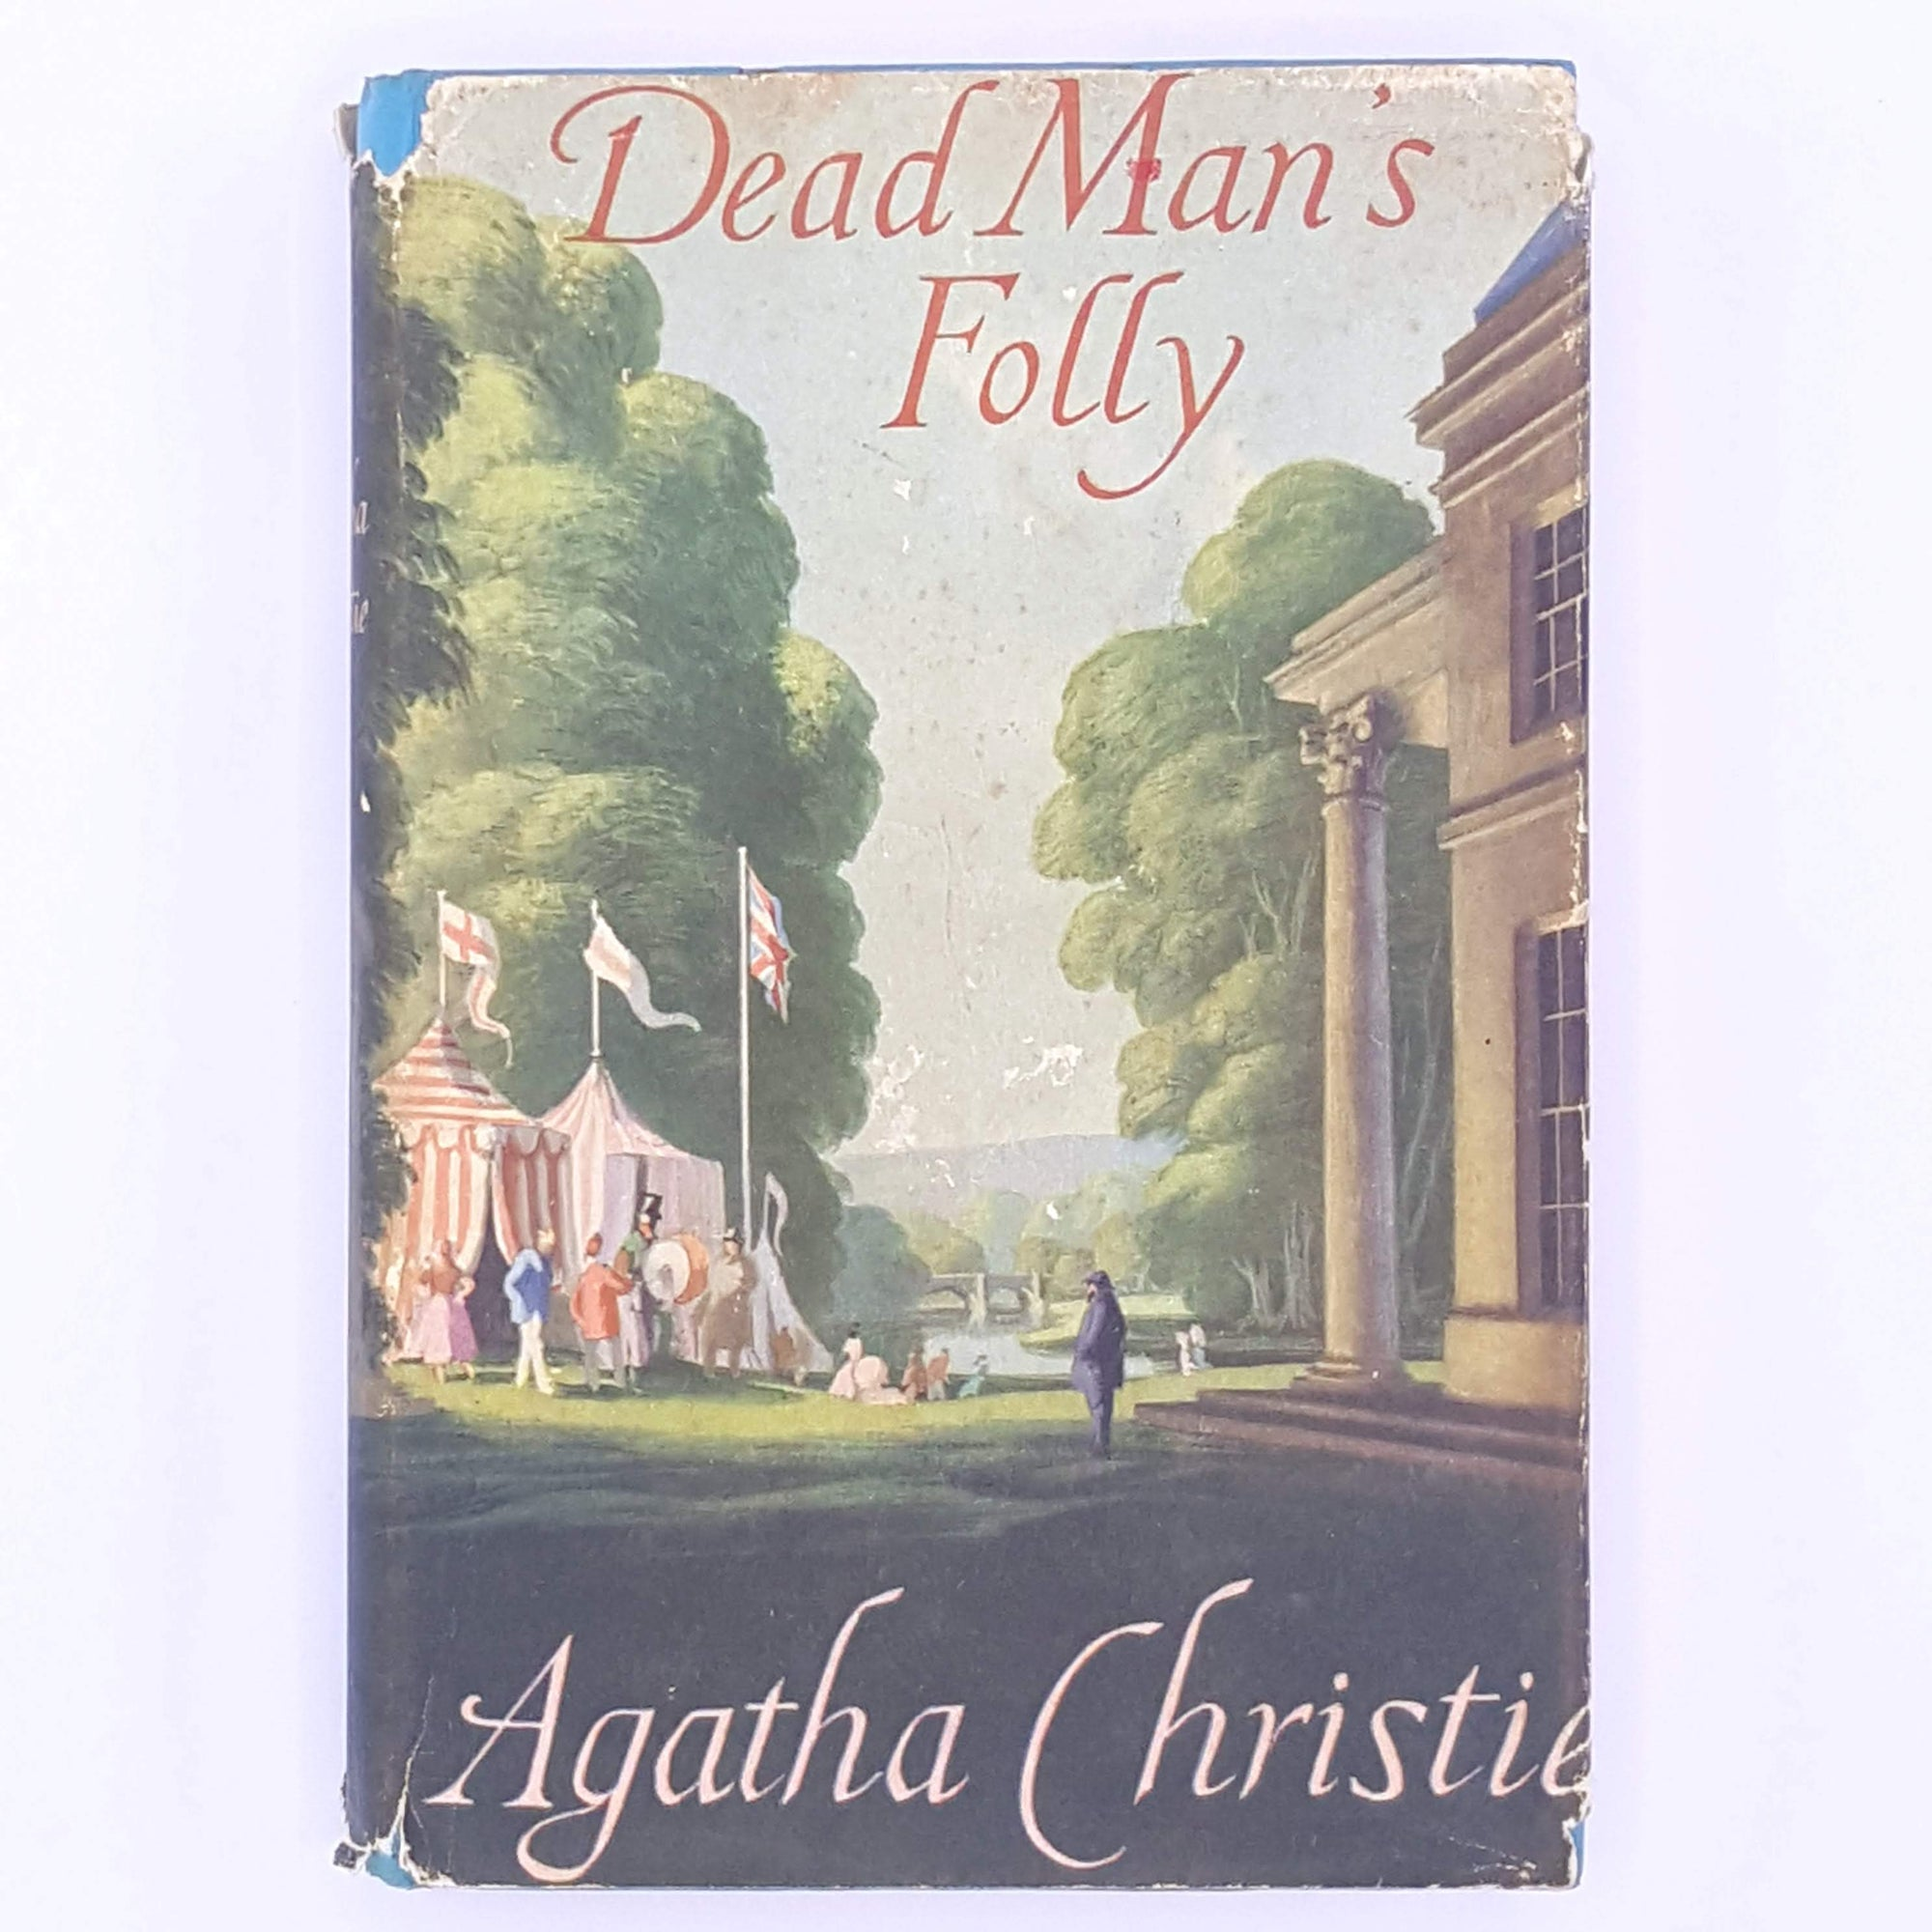 classic-christmas-gifts-books-country-house-library-vintage-dead-mans-folly-old-for-her- agatha-christie-patterned-thrift-antique-decorative-